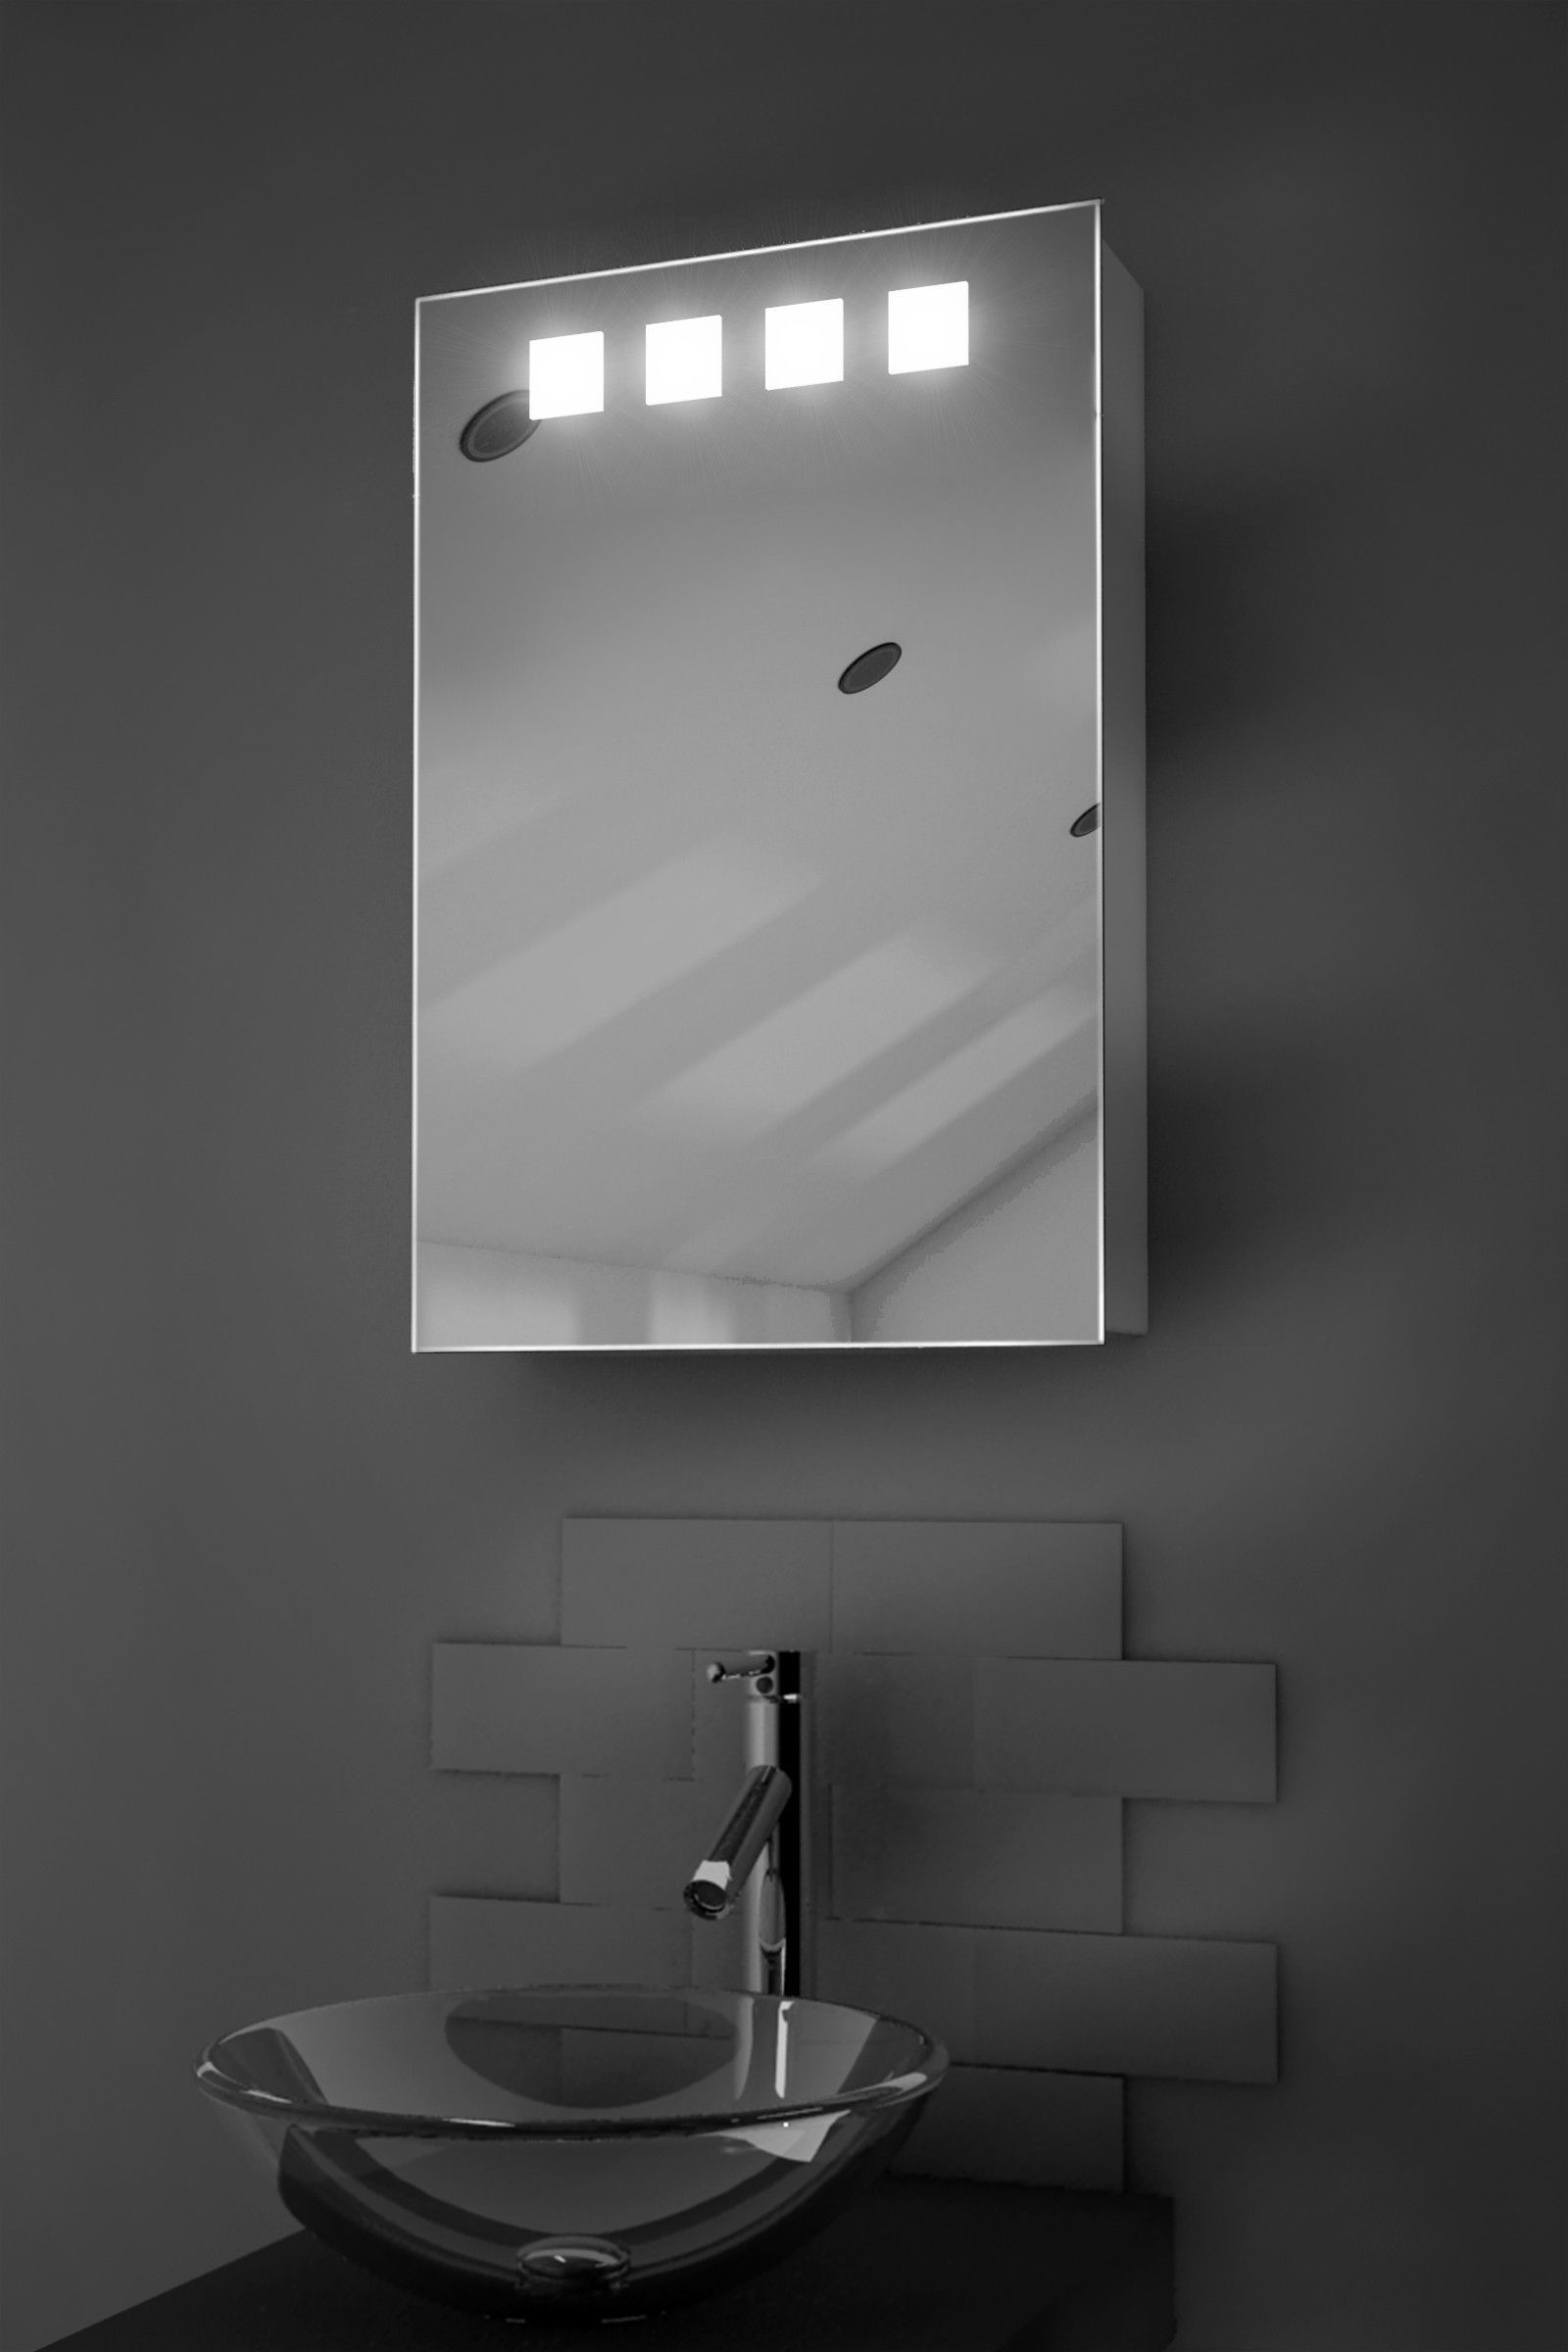 Bathroom Mirrors With Tv Built In Nova Led Cabinet H600mm X W400mm X D140mm